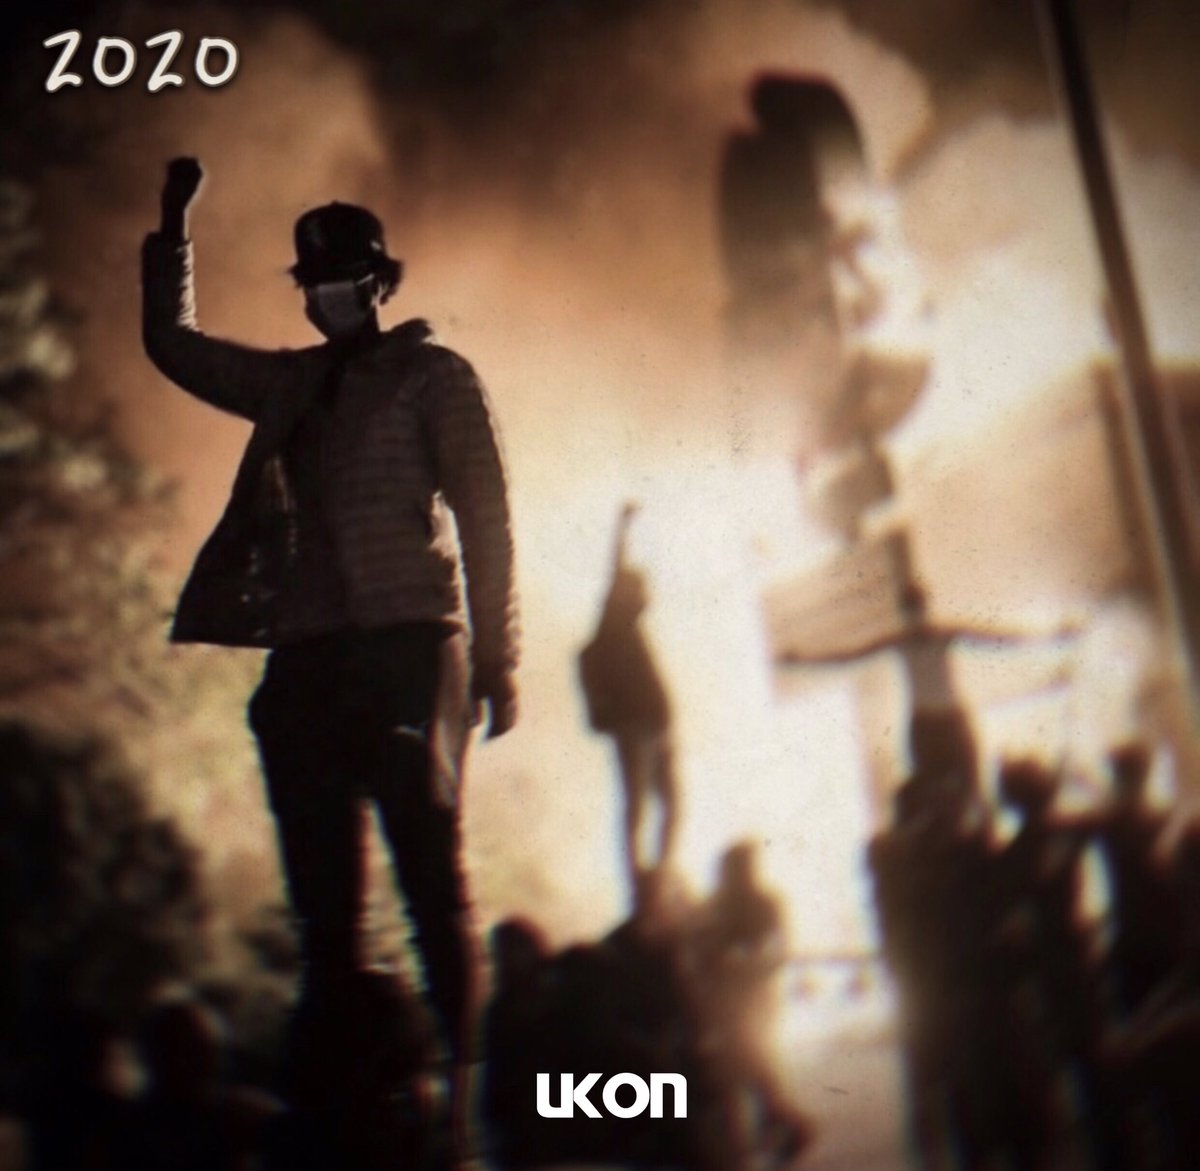 Working on a side project  #2020riots #Ukon #EP pic.twitter.com/skFEkqgZcd